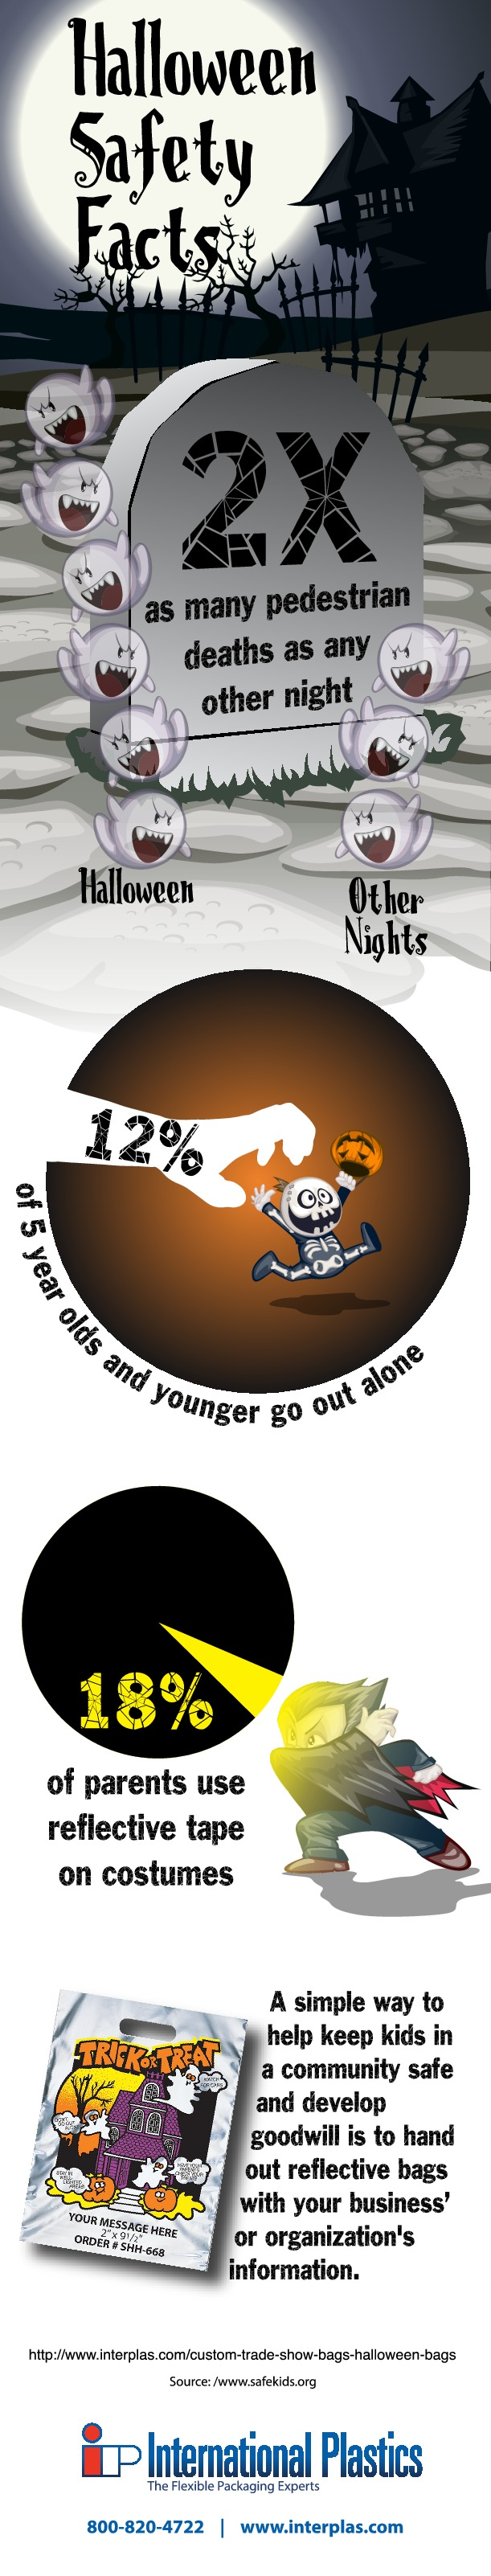 Halloween Safety Facts